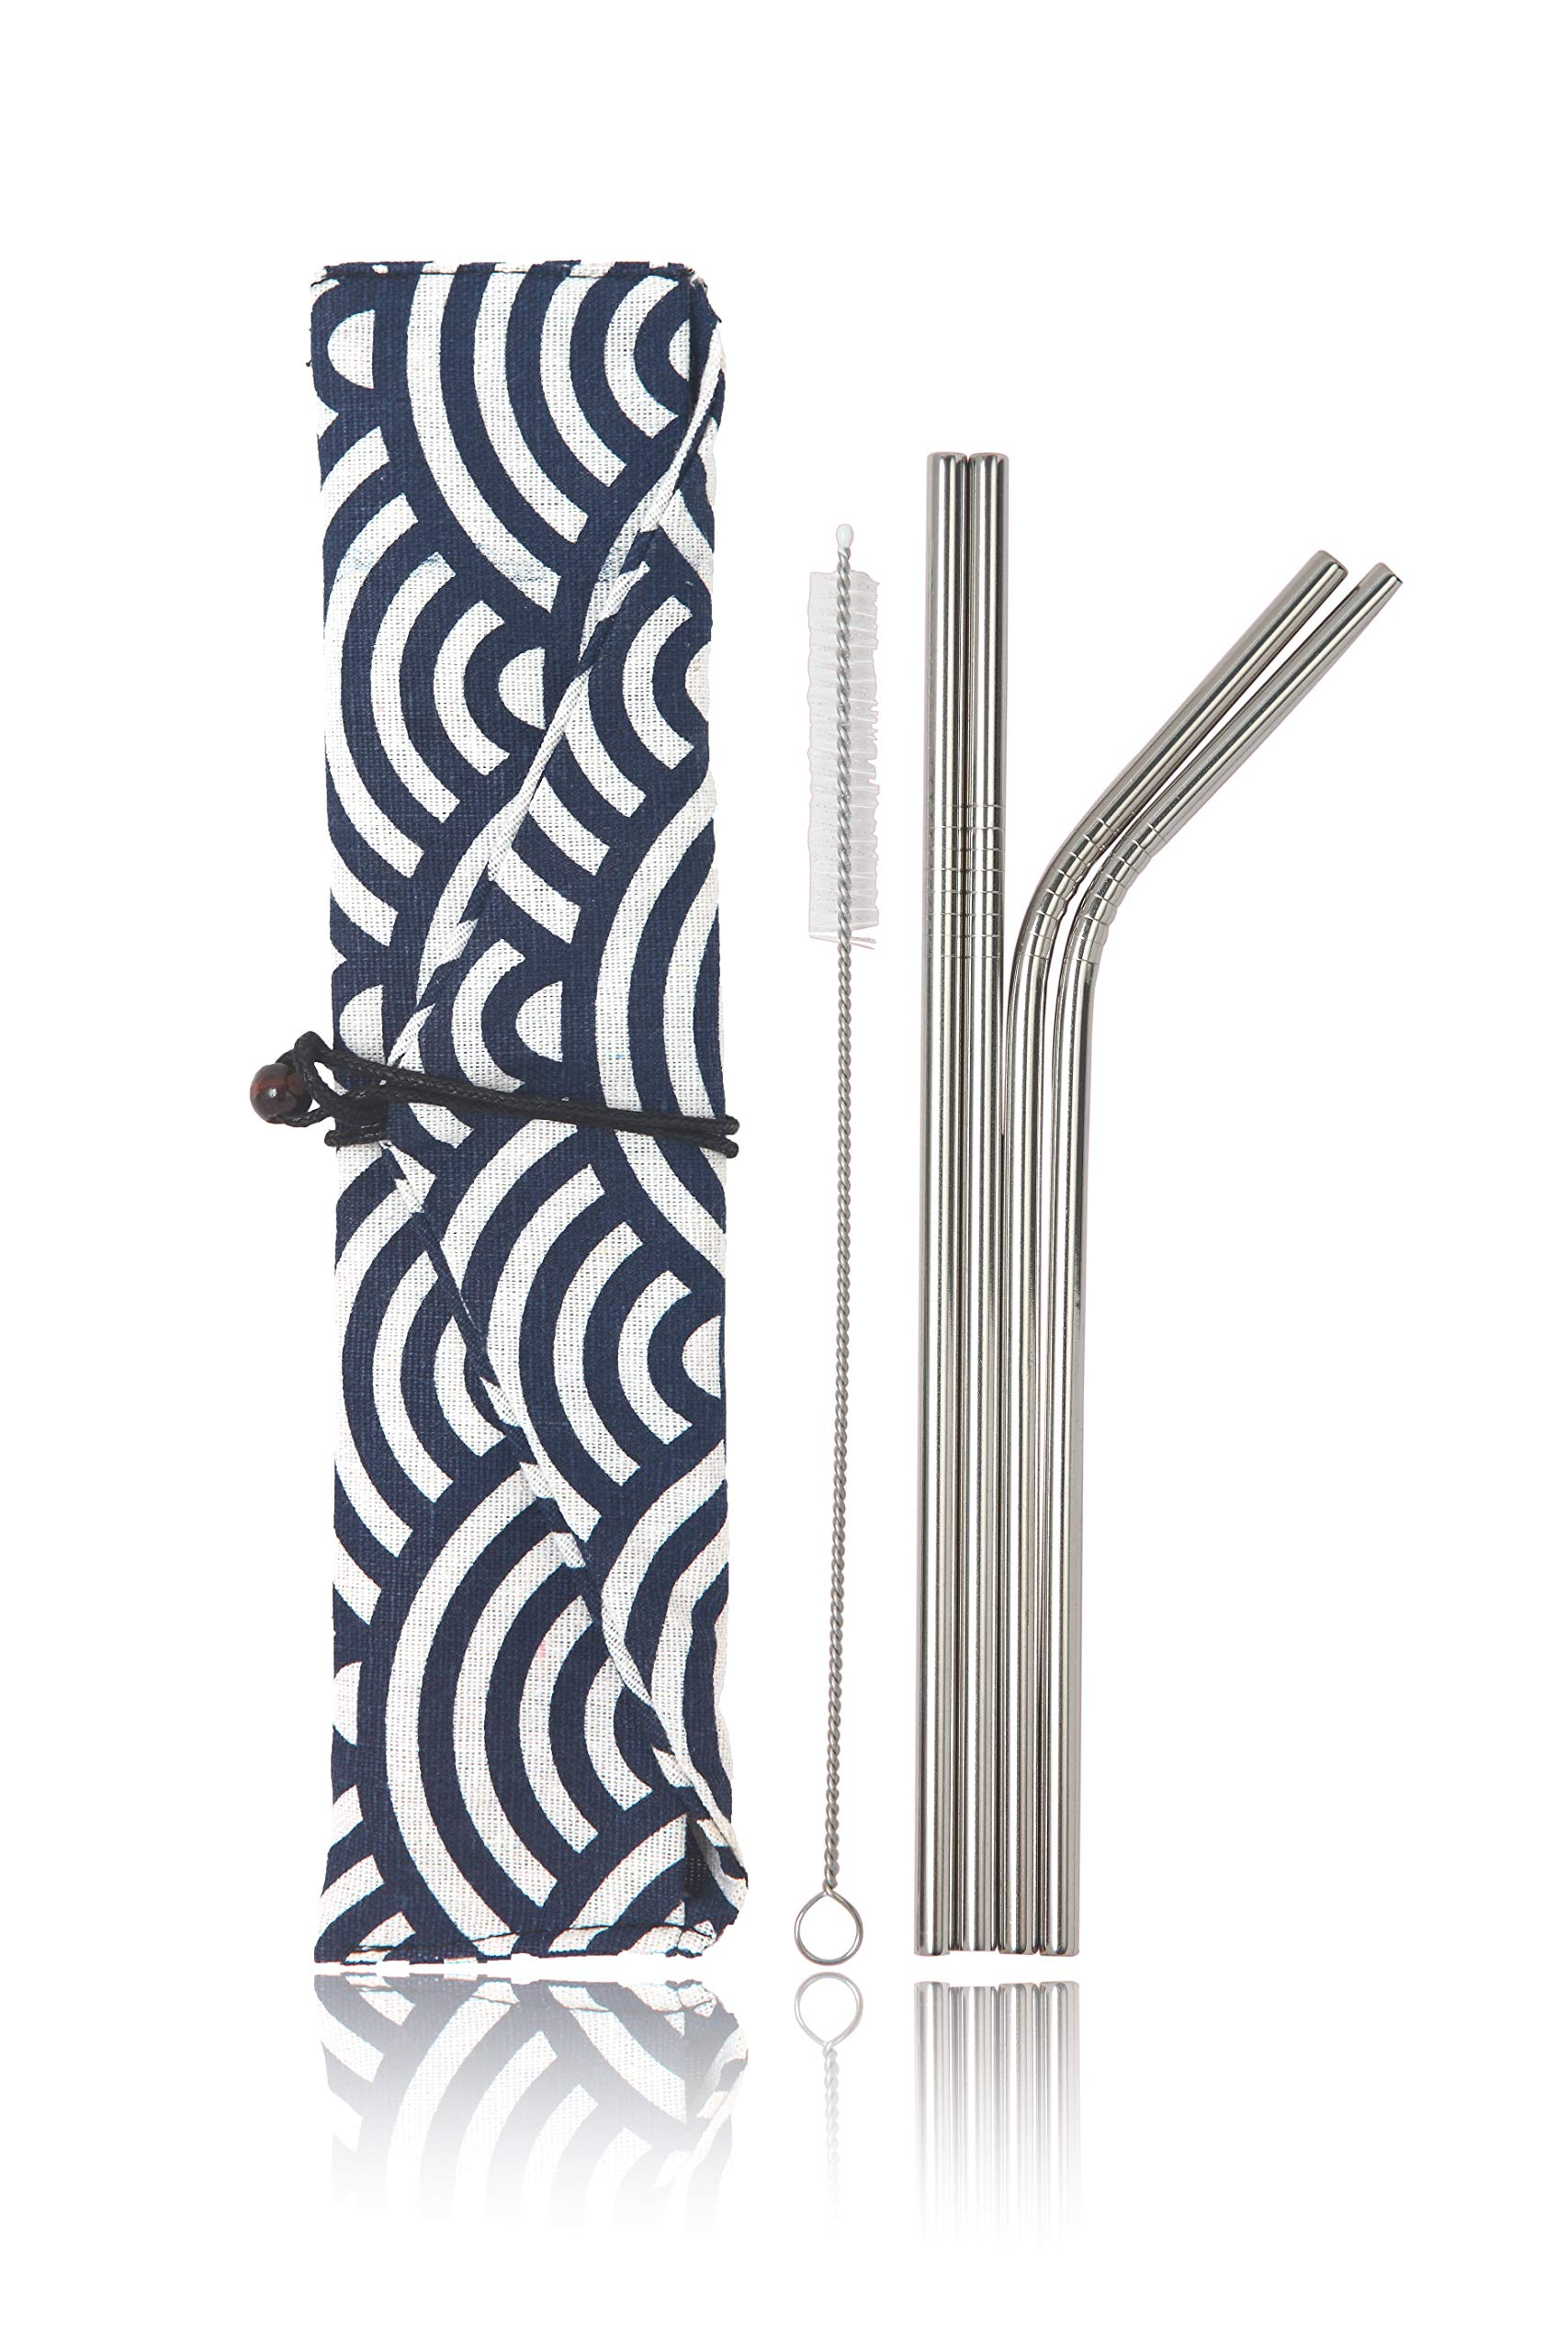 Stainless Steel Reusable Metal Straws -Portable Food Grade 4 Pack 8.5'' Cleaning Brush and Stylish Cloth Bag case Included. Fit 20 oz. tumblers. (Big Waves)